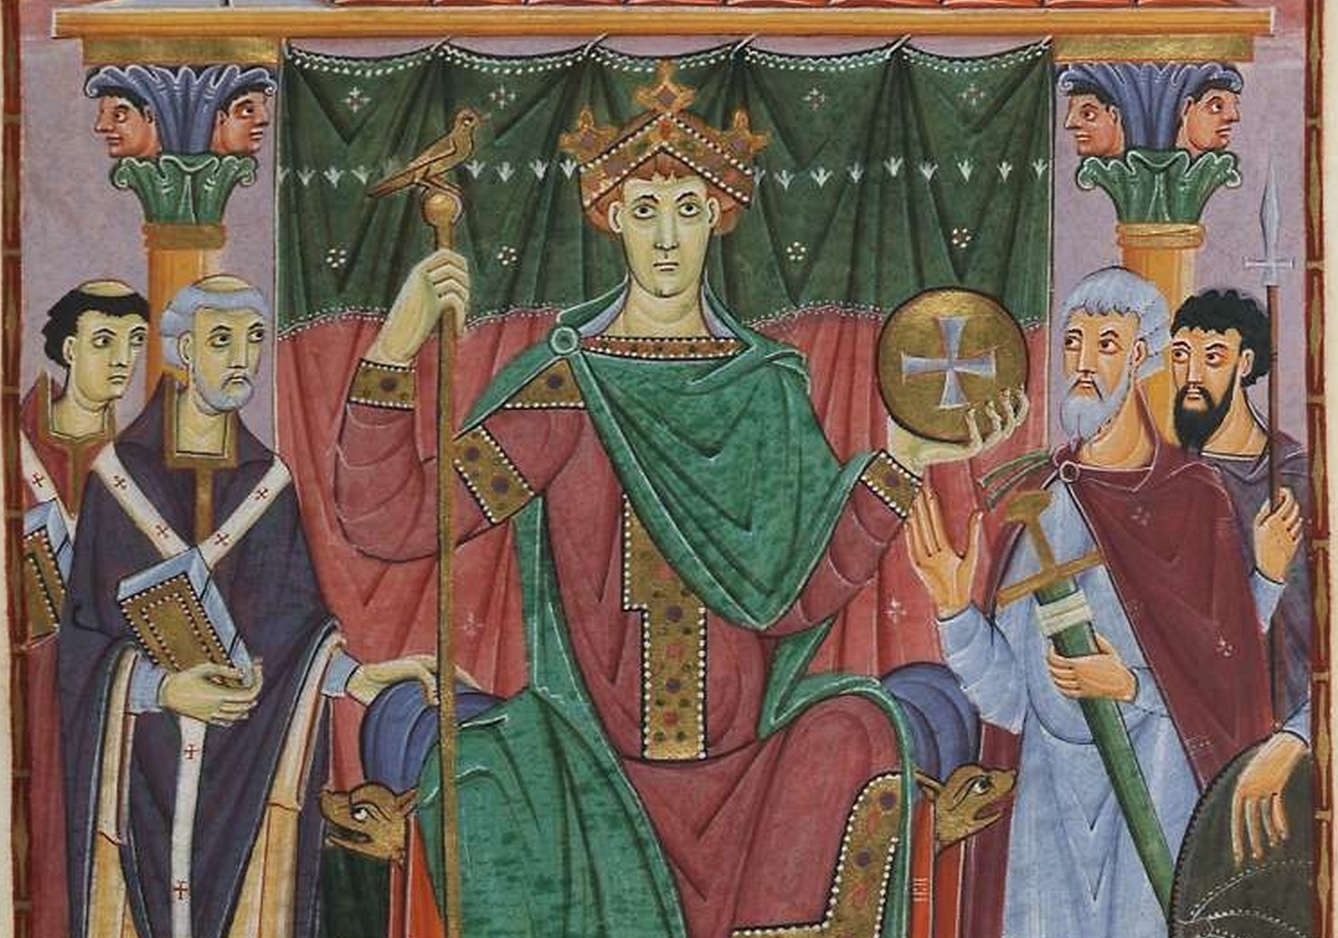 Detail of ruler portrait of Otto III (f.24), Gospels of Otto III (Munich, Bayerische Stattsbibliothek, Clm.4453)